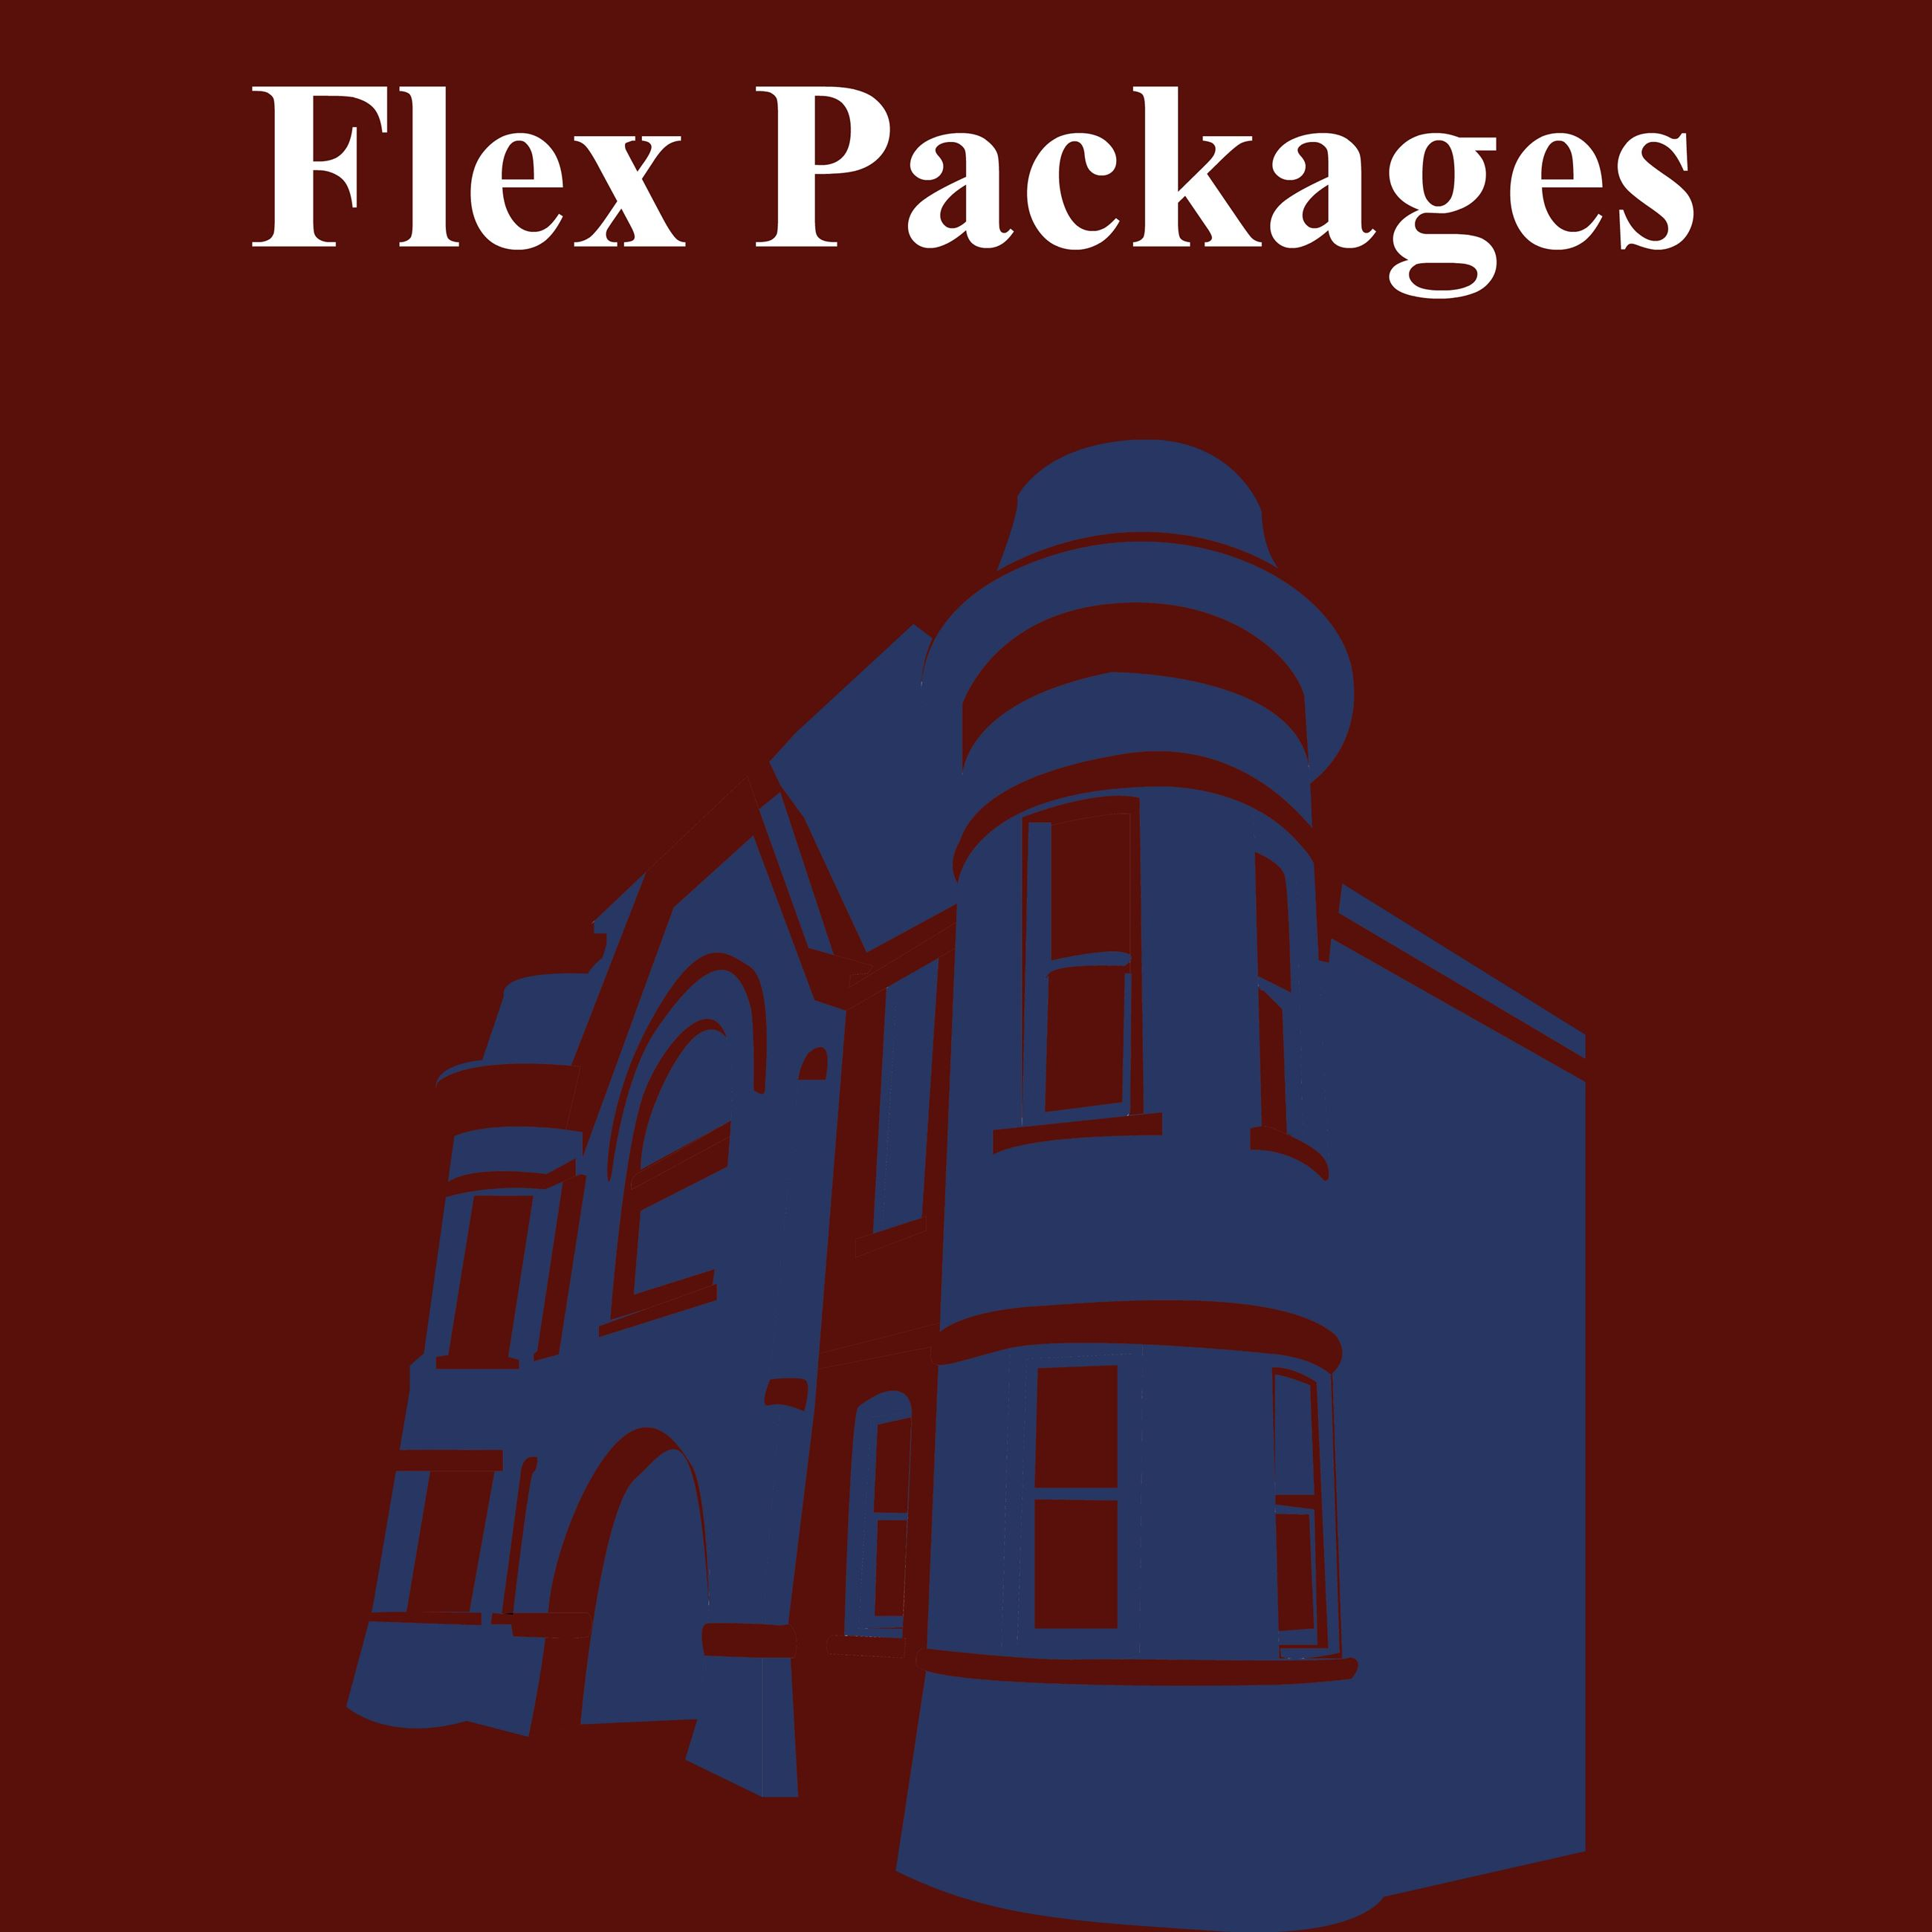 CLICK HERE For Information About Money Saving Flex Packages